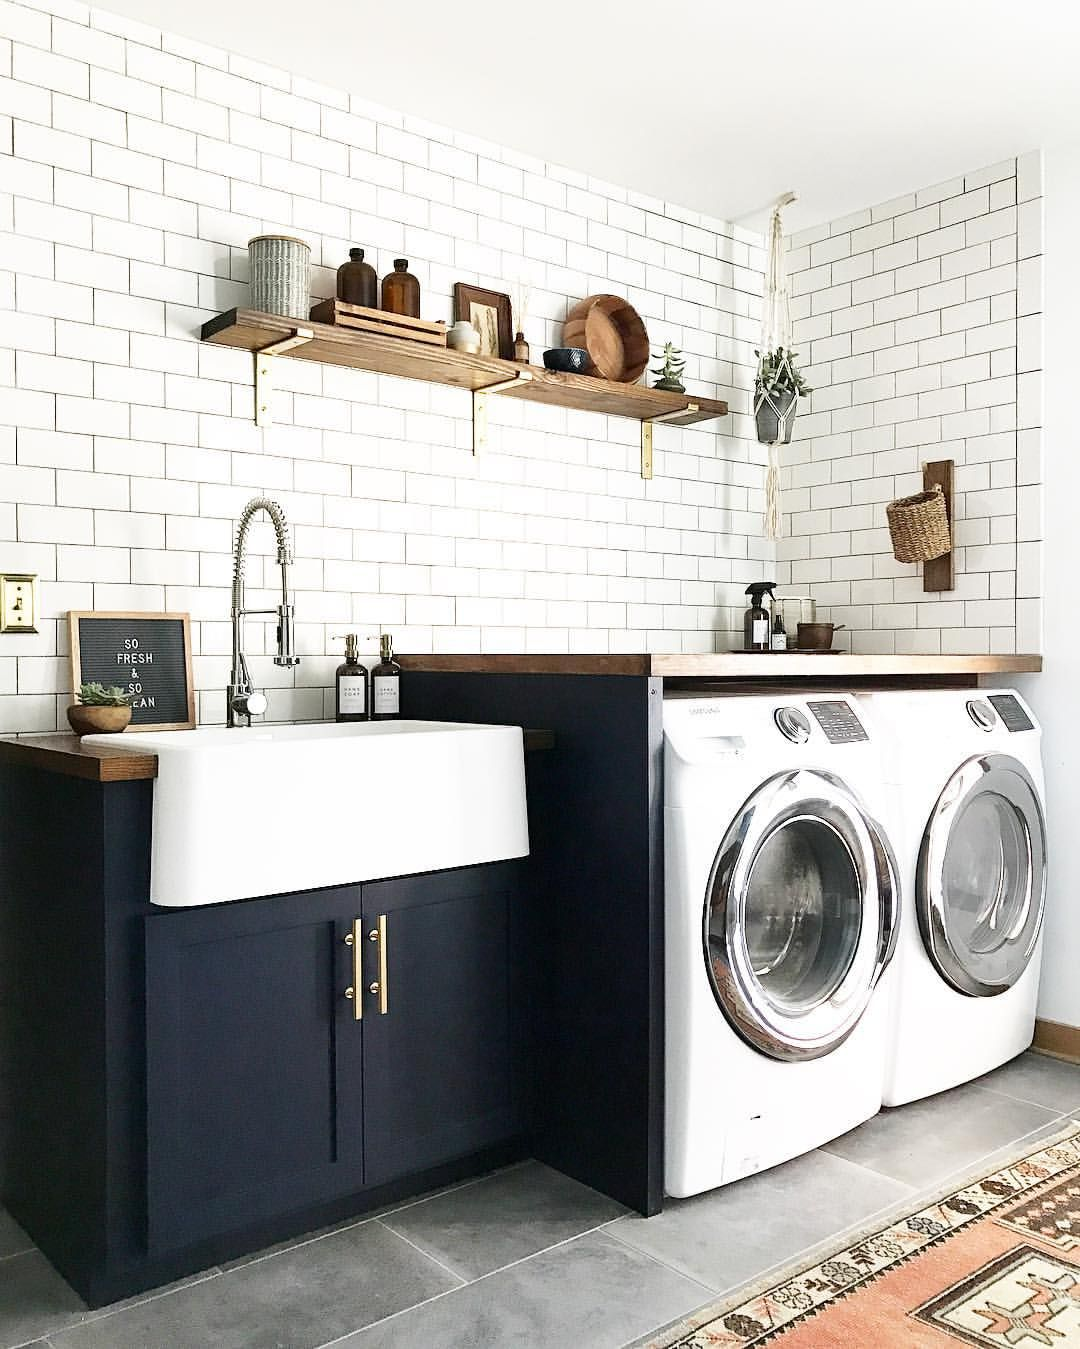 Hartland Kitchen And Laundry Room Remodel: 5 Tips On Buying Farmhouse Sink